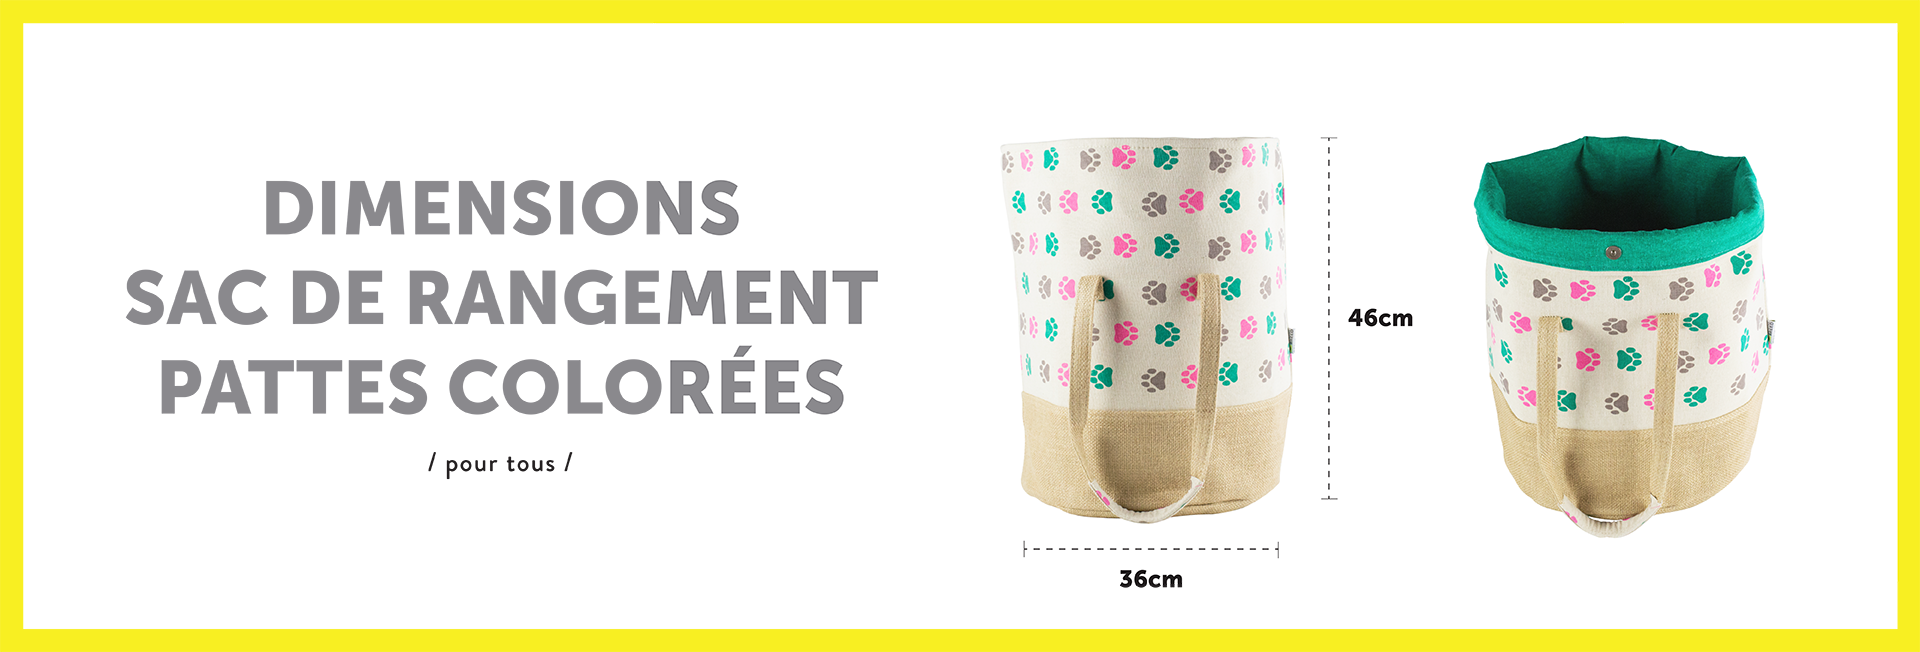 dimensions-goodie-bag-colored-paws-for-dogs-french